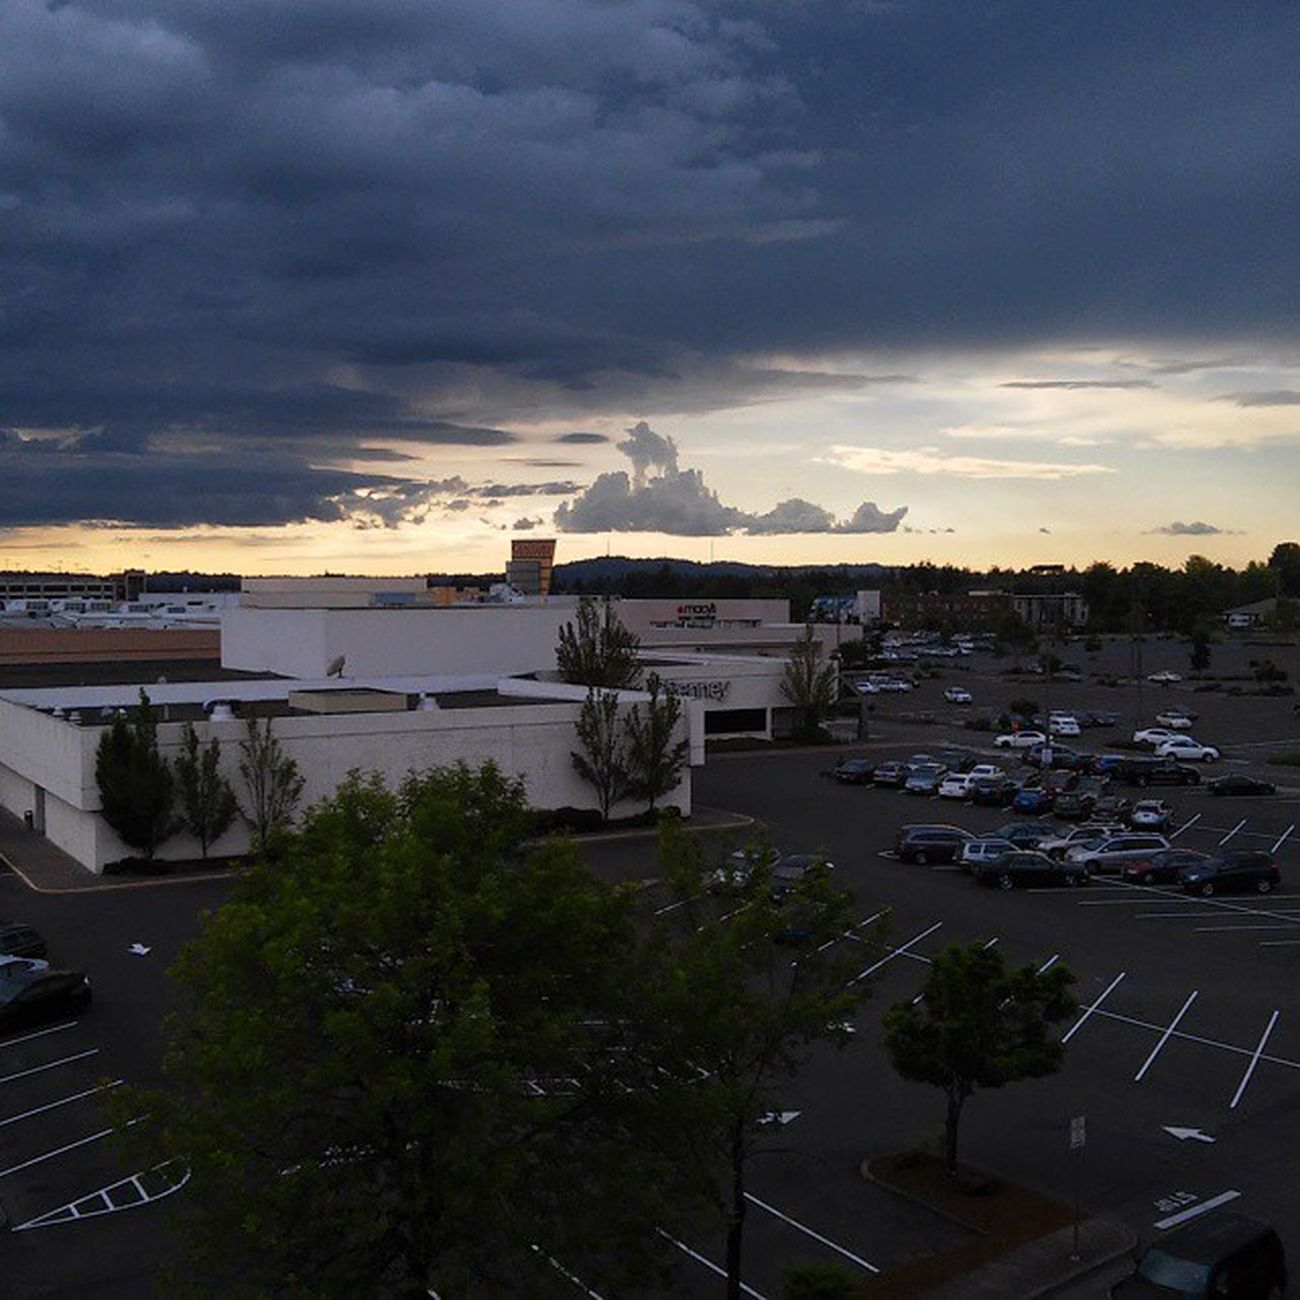 The View of Clackamas Mall